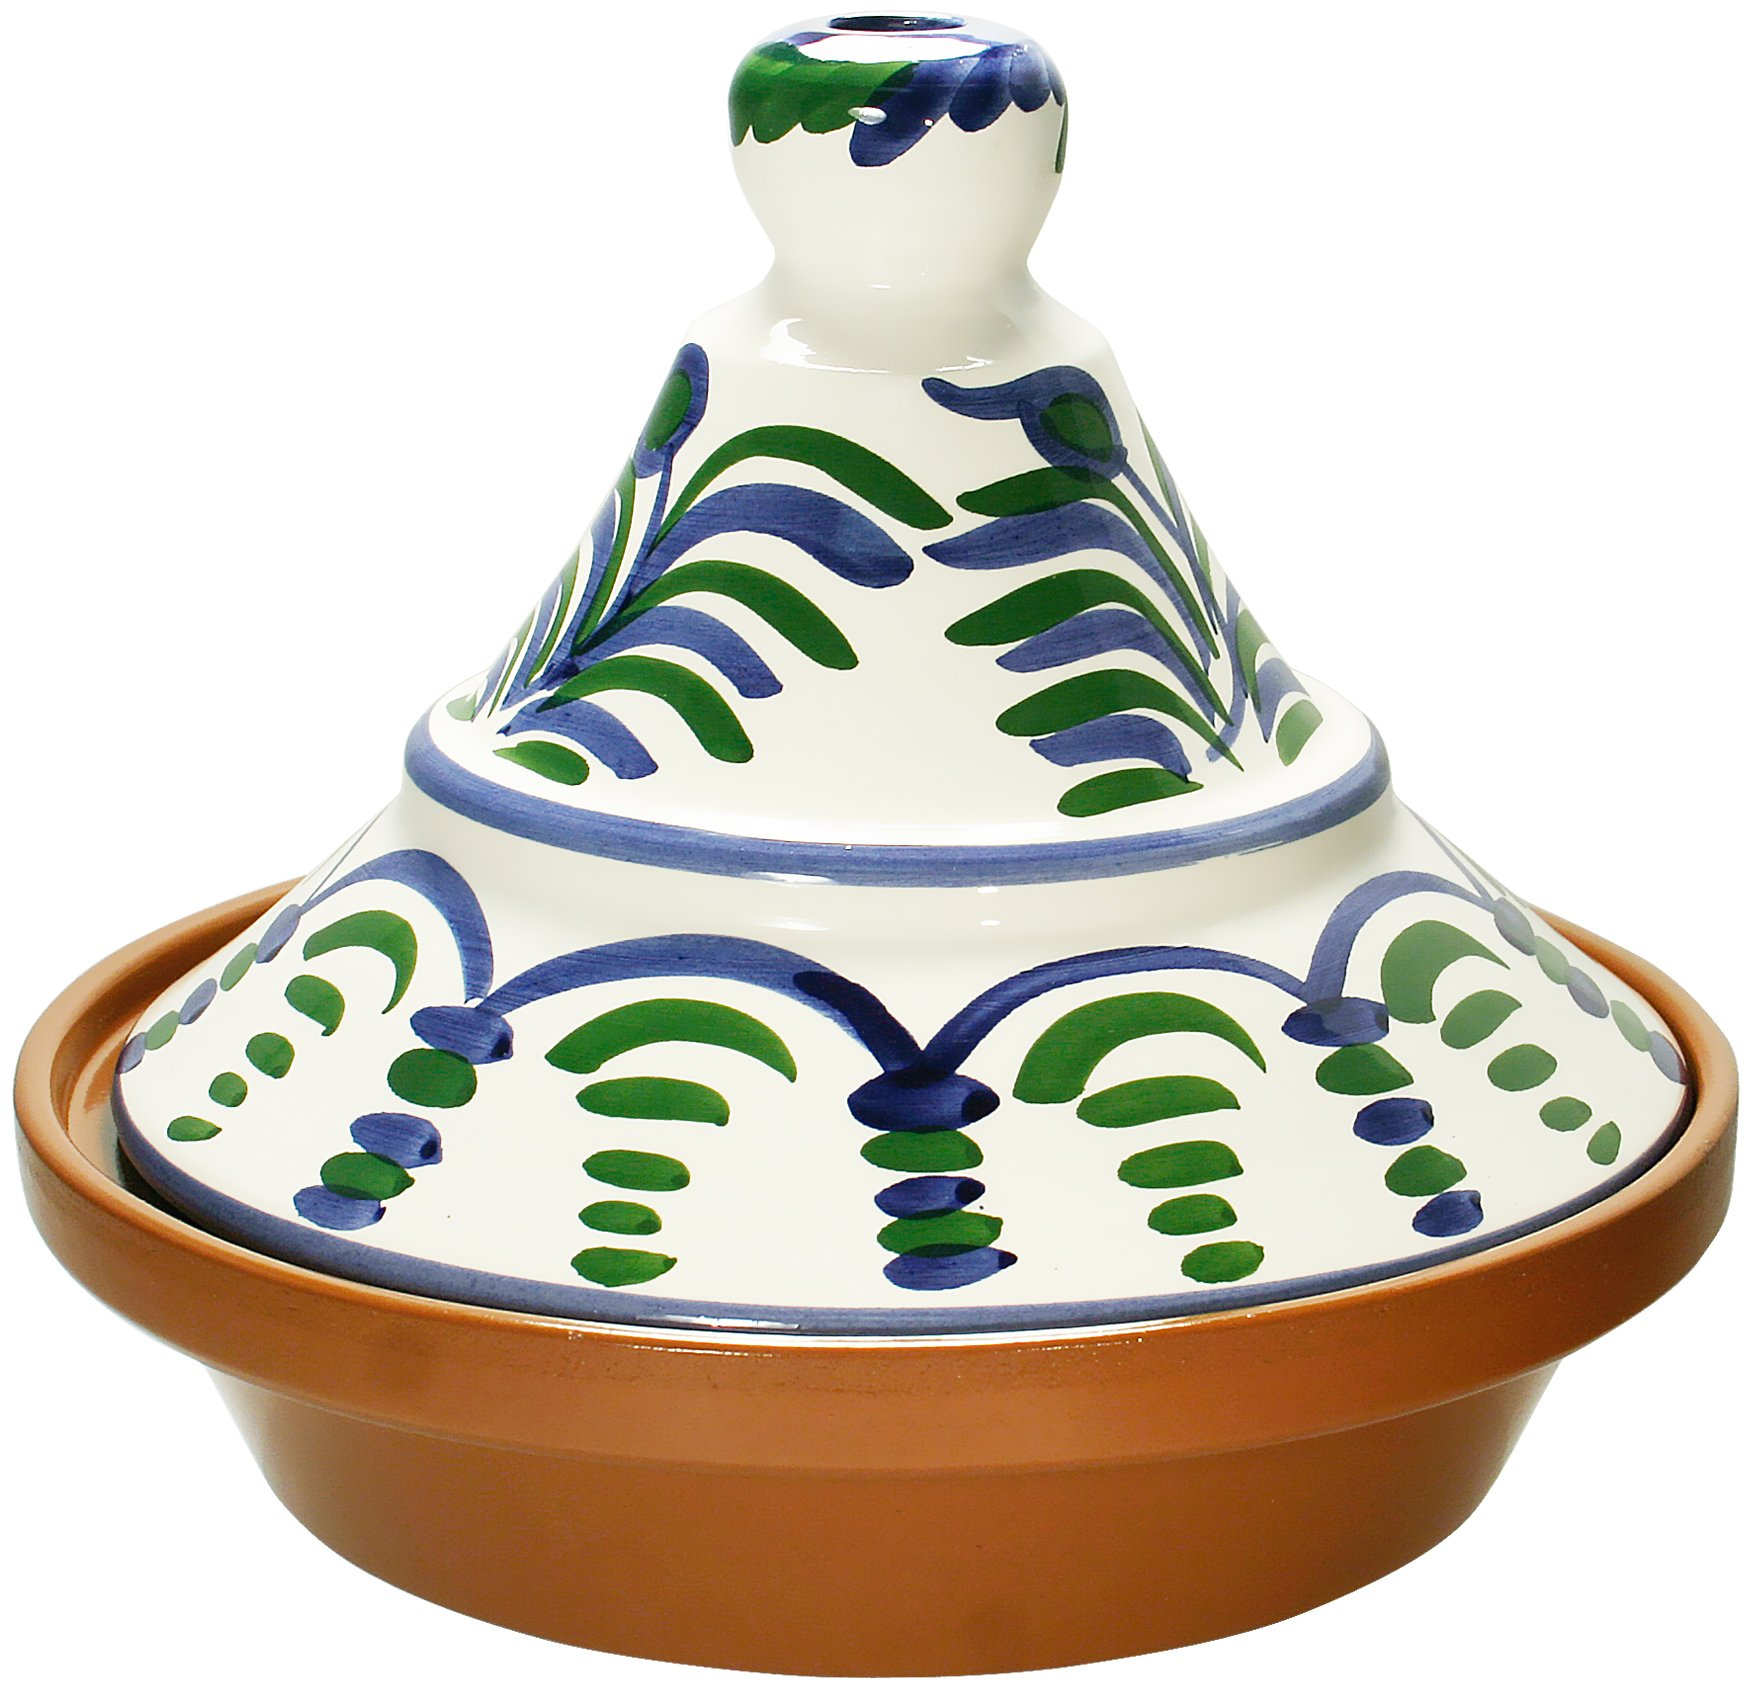 Reston Lloyd Hand Painted Natural Terra Cotta Tagine, 2-Quart, Malaga by Reston Lloyd (Image #1)